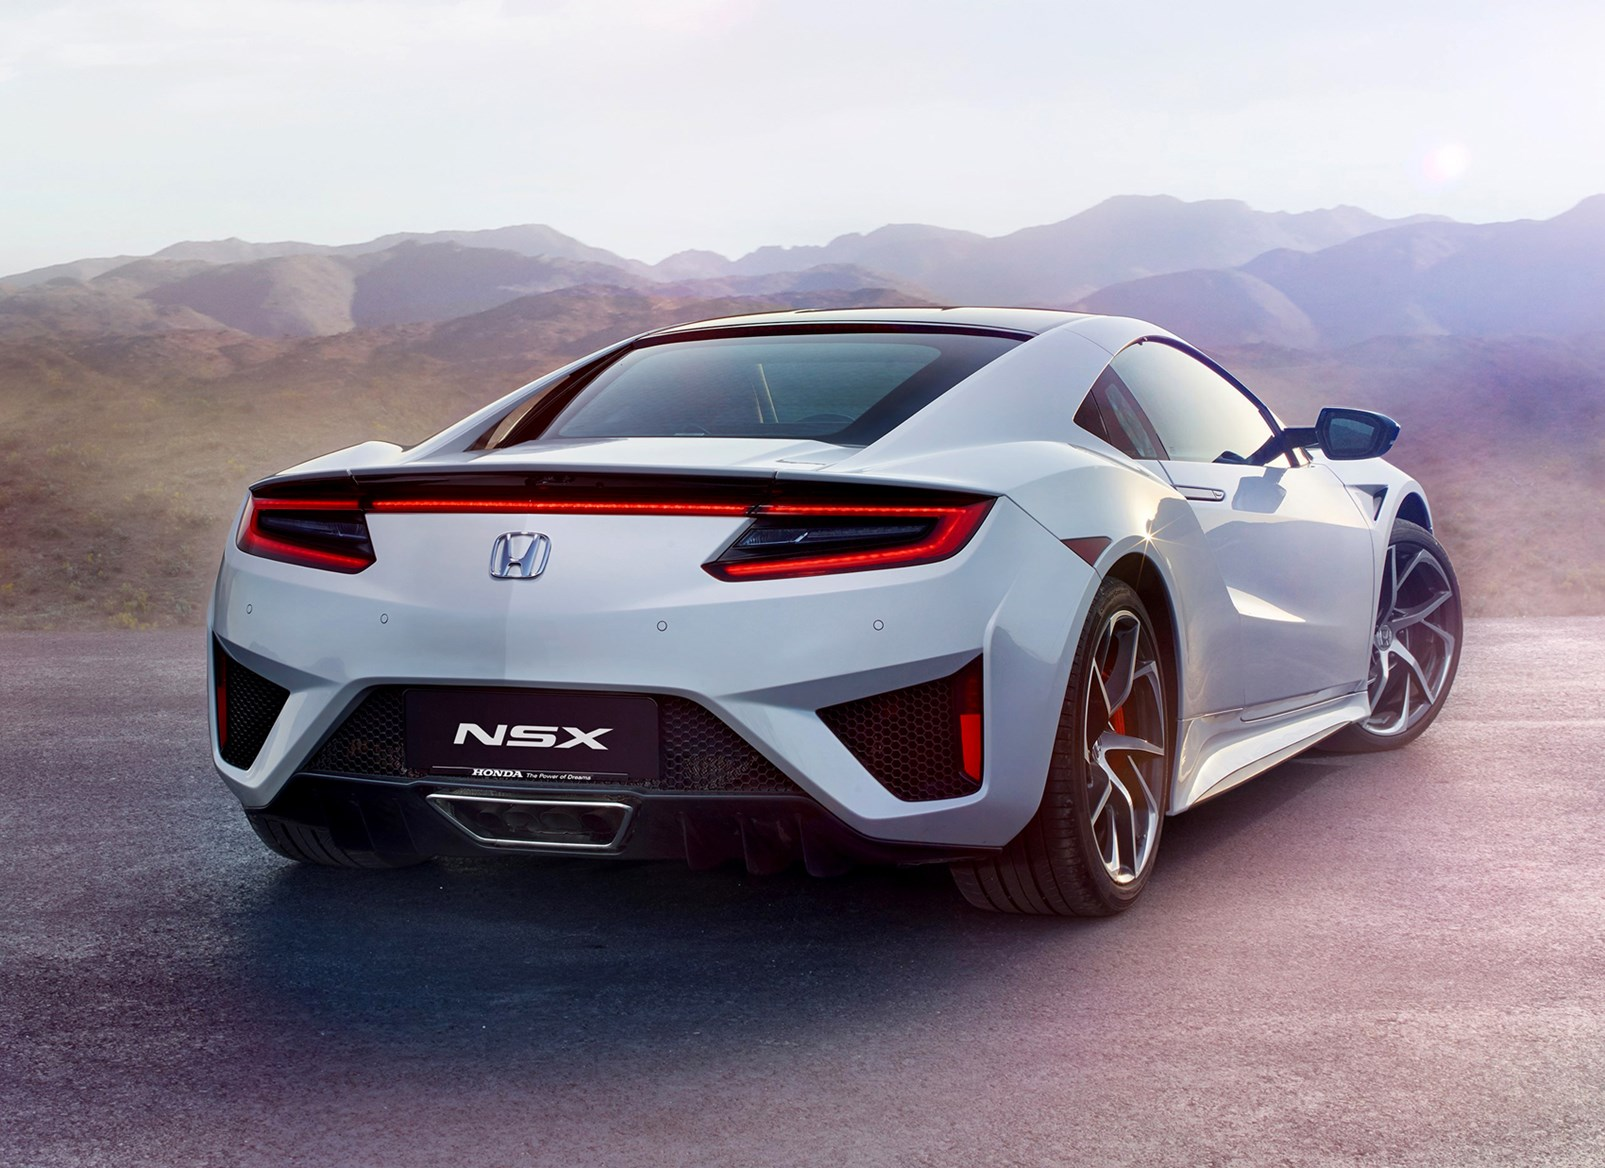 honda nsx coupe review 2016 parkers. Black Bedroom Furniture Sets. Home Design Ideas